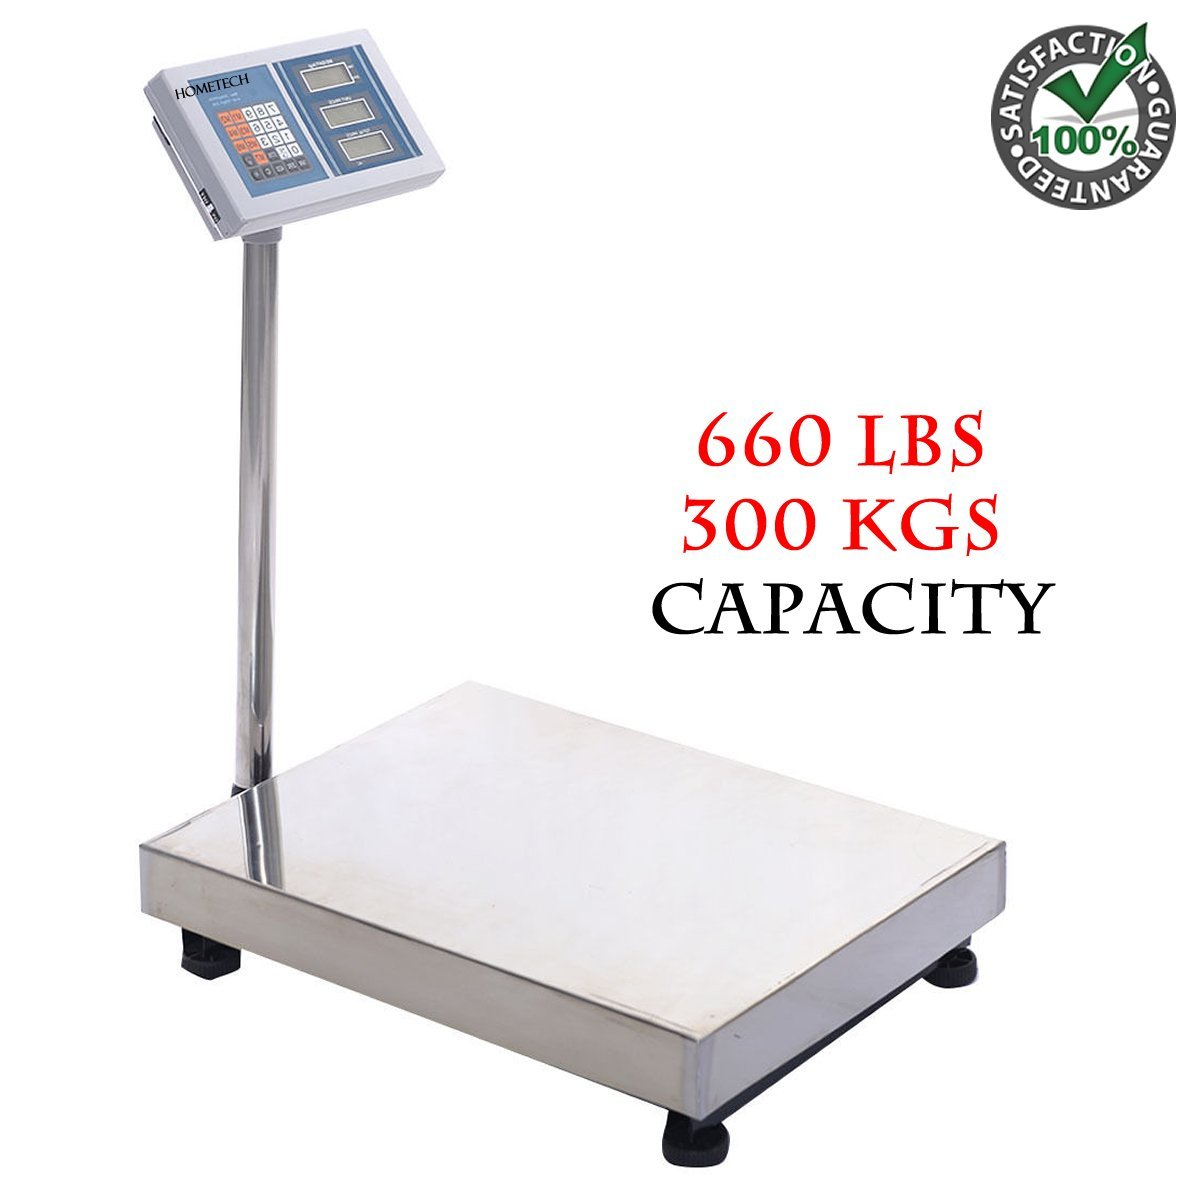 300 Kgs Computing Platform Digital Floor Weight Scale | Large Heavy Duty Industrial Grade Stainless Steel for Postal Mailing Shipping Pet Dog Cat Indoor Outdoor Office Vet Medical Agriculture Textile by HomeTech